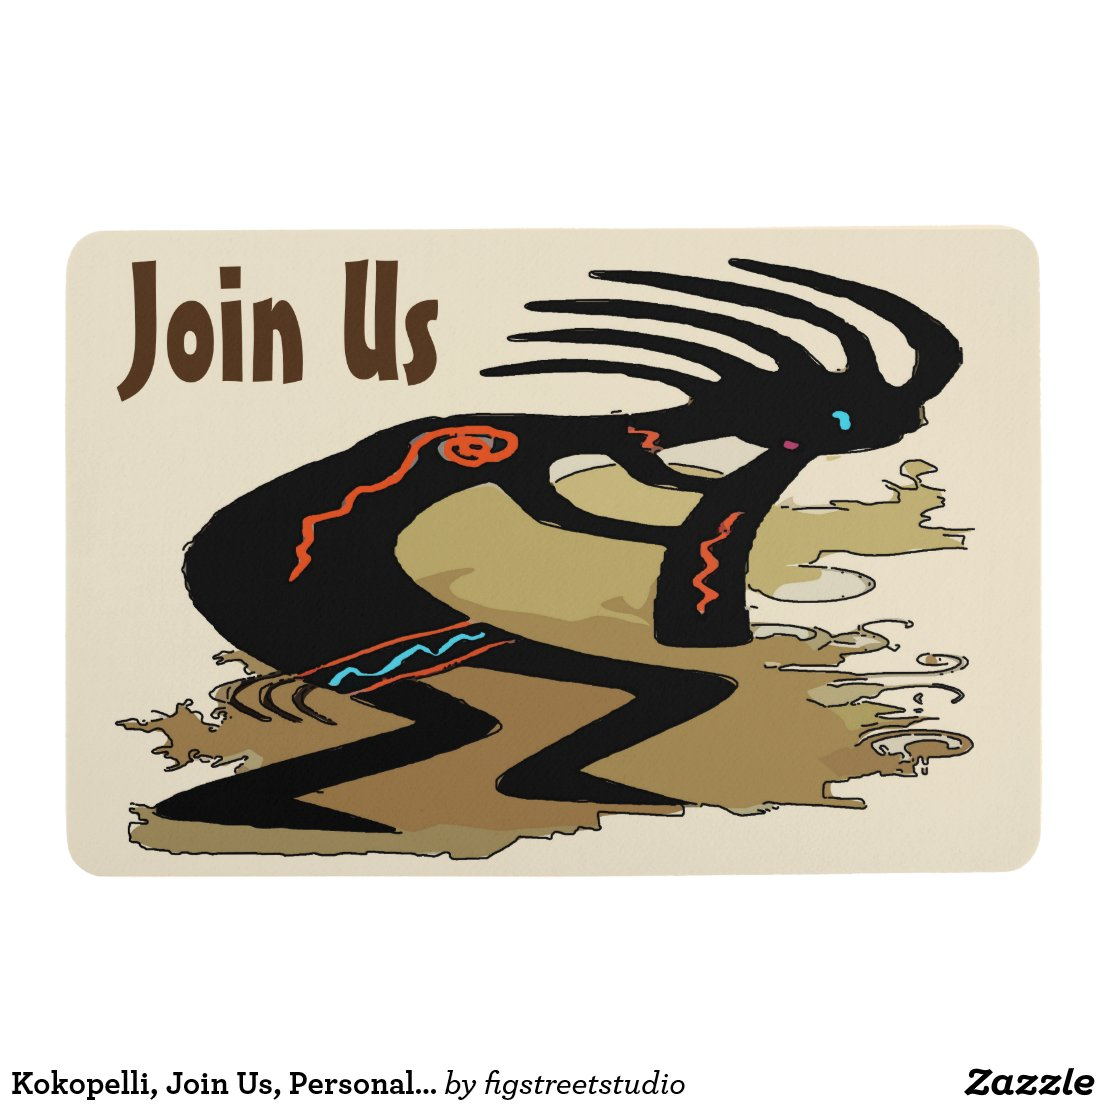 Kokopelli, Join Us, Personalize